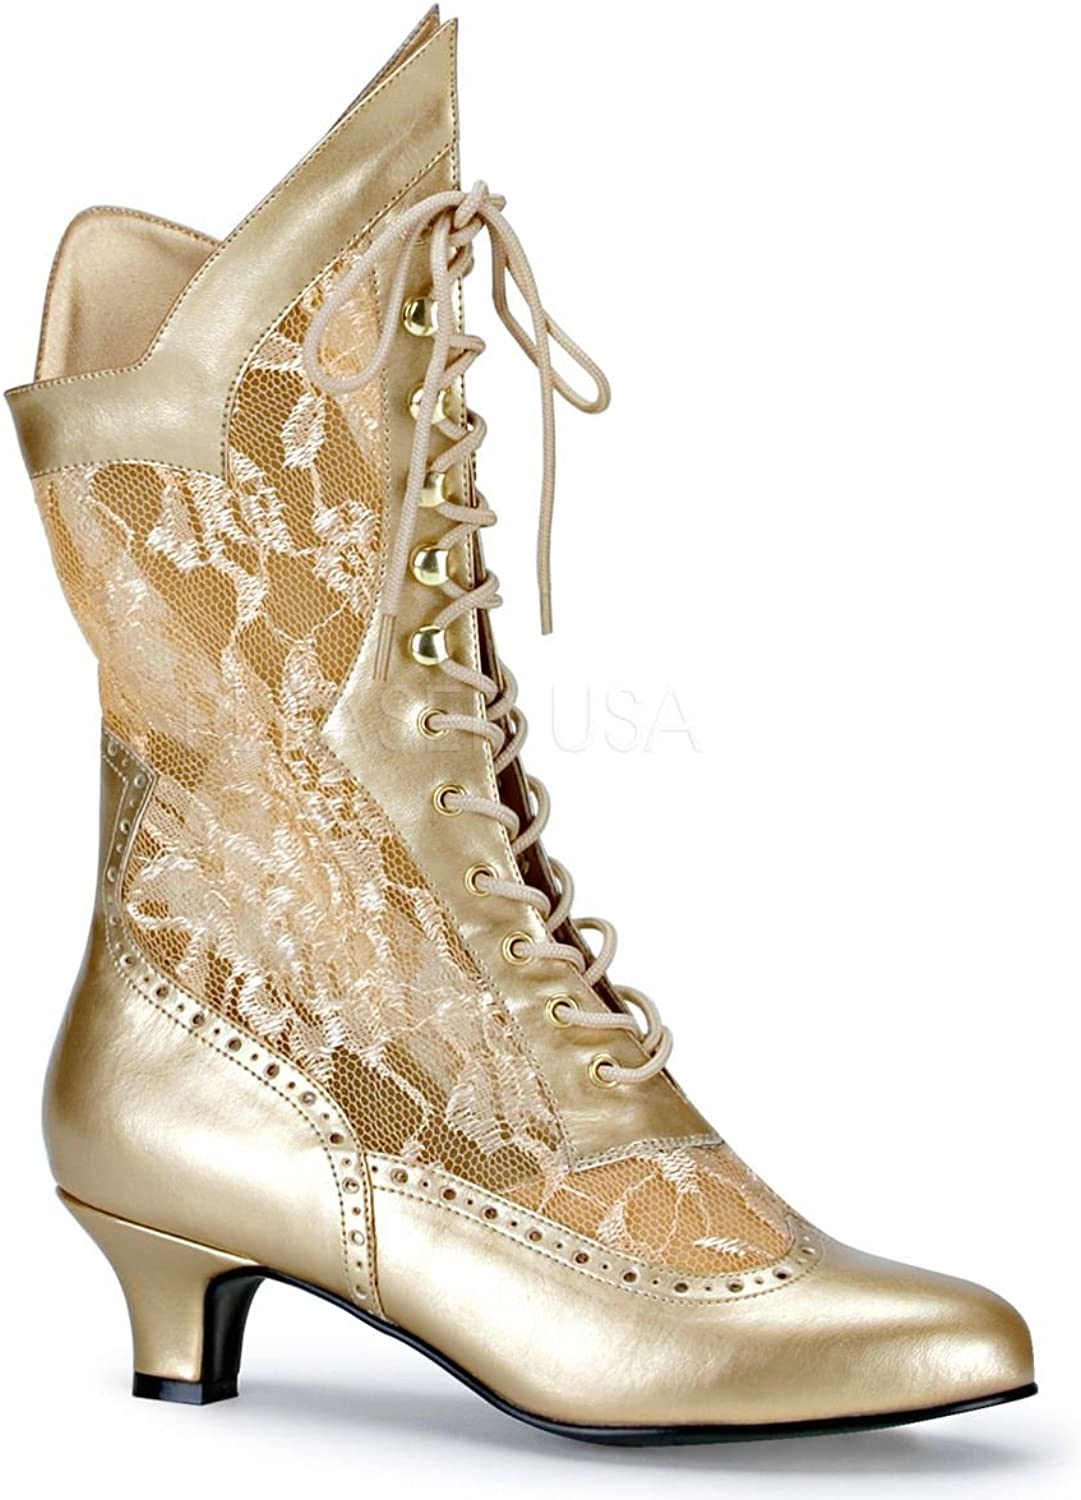 Dame-115, Lace Victorian Tall Boots